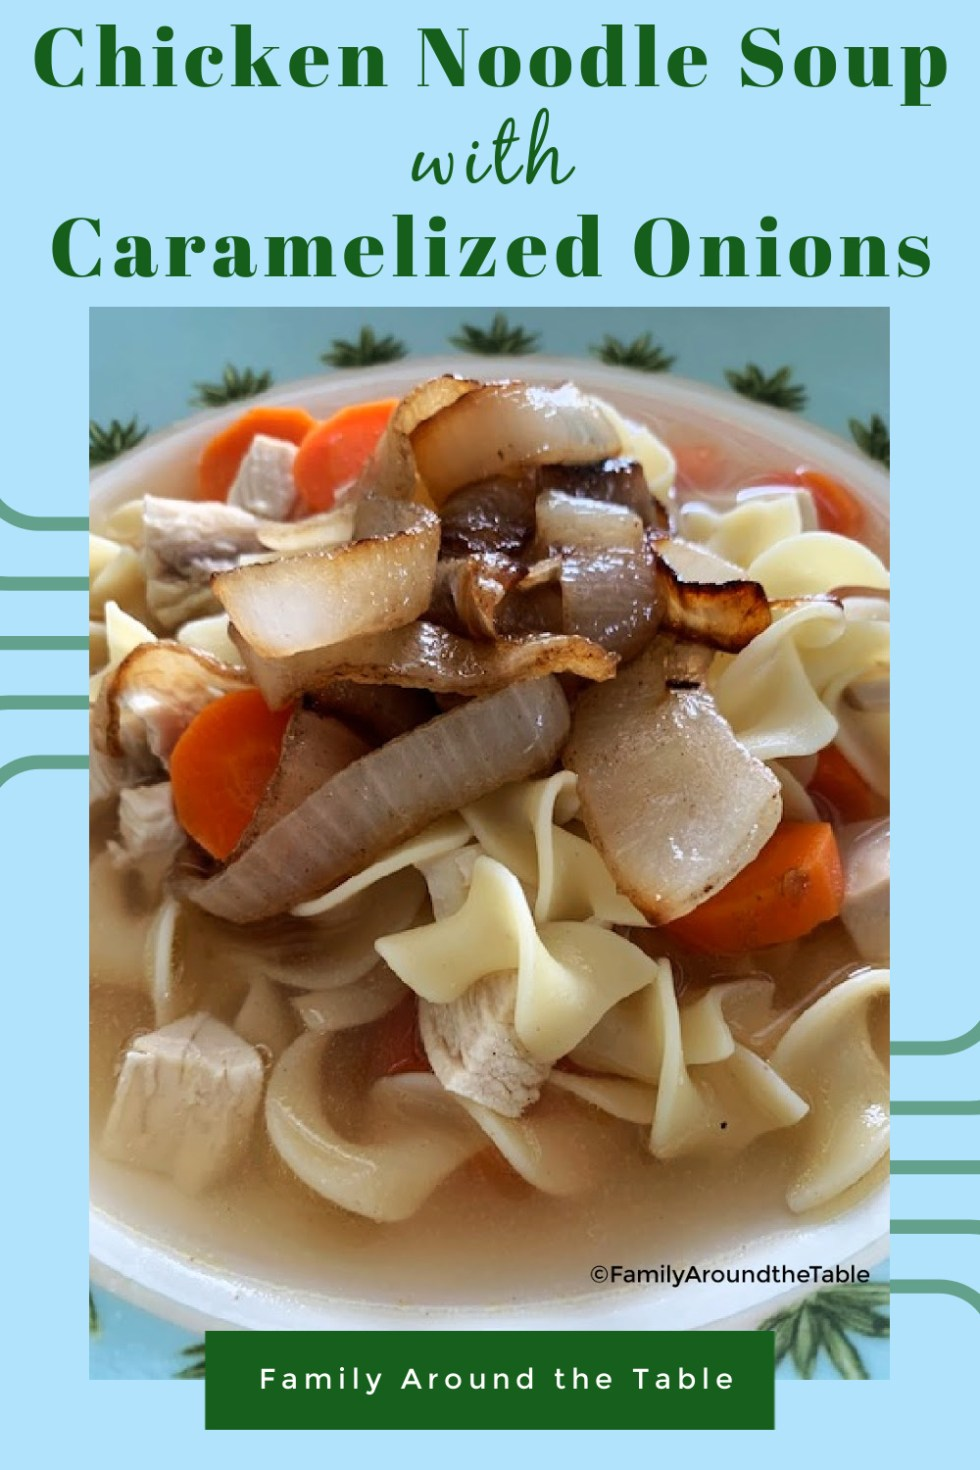 Chicken noodle soup with caramelized onions Pinterest image.